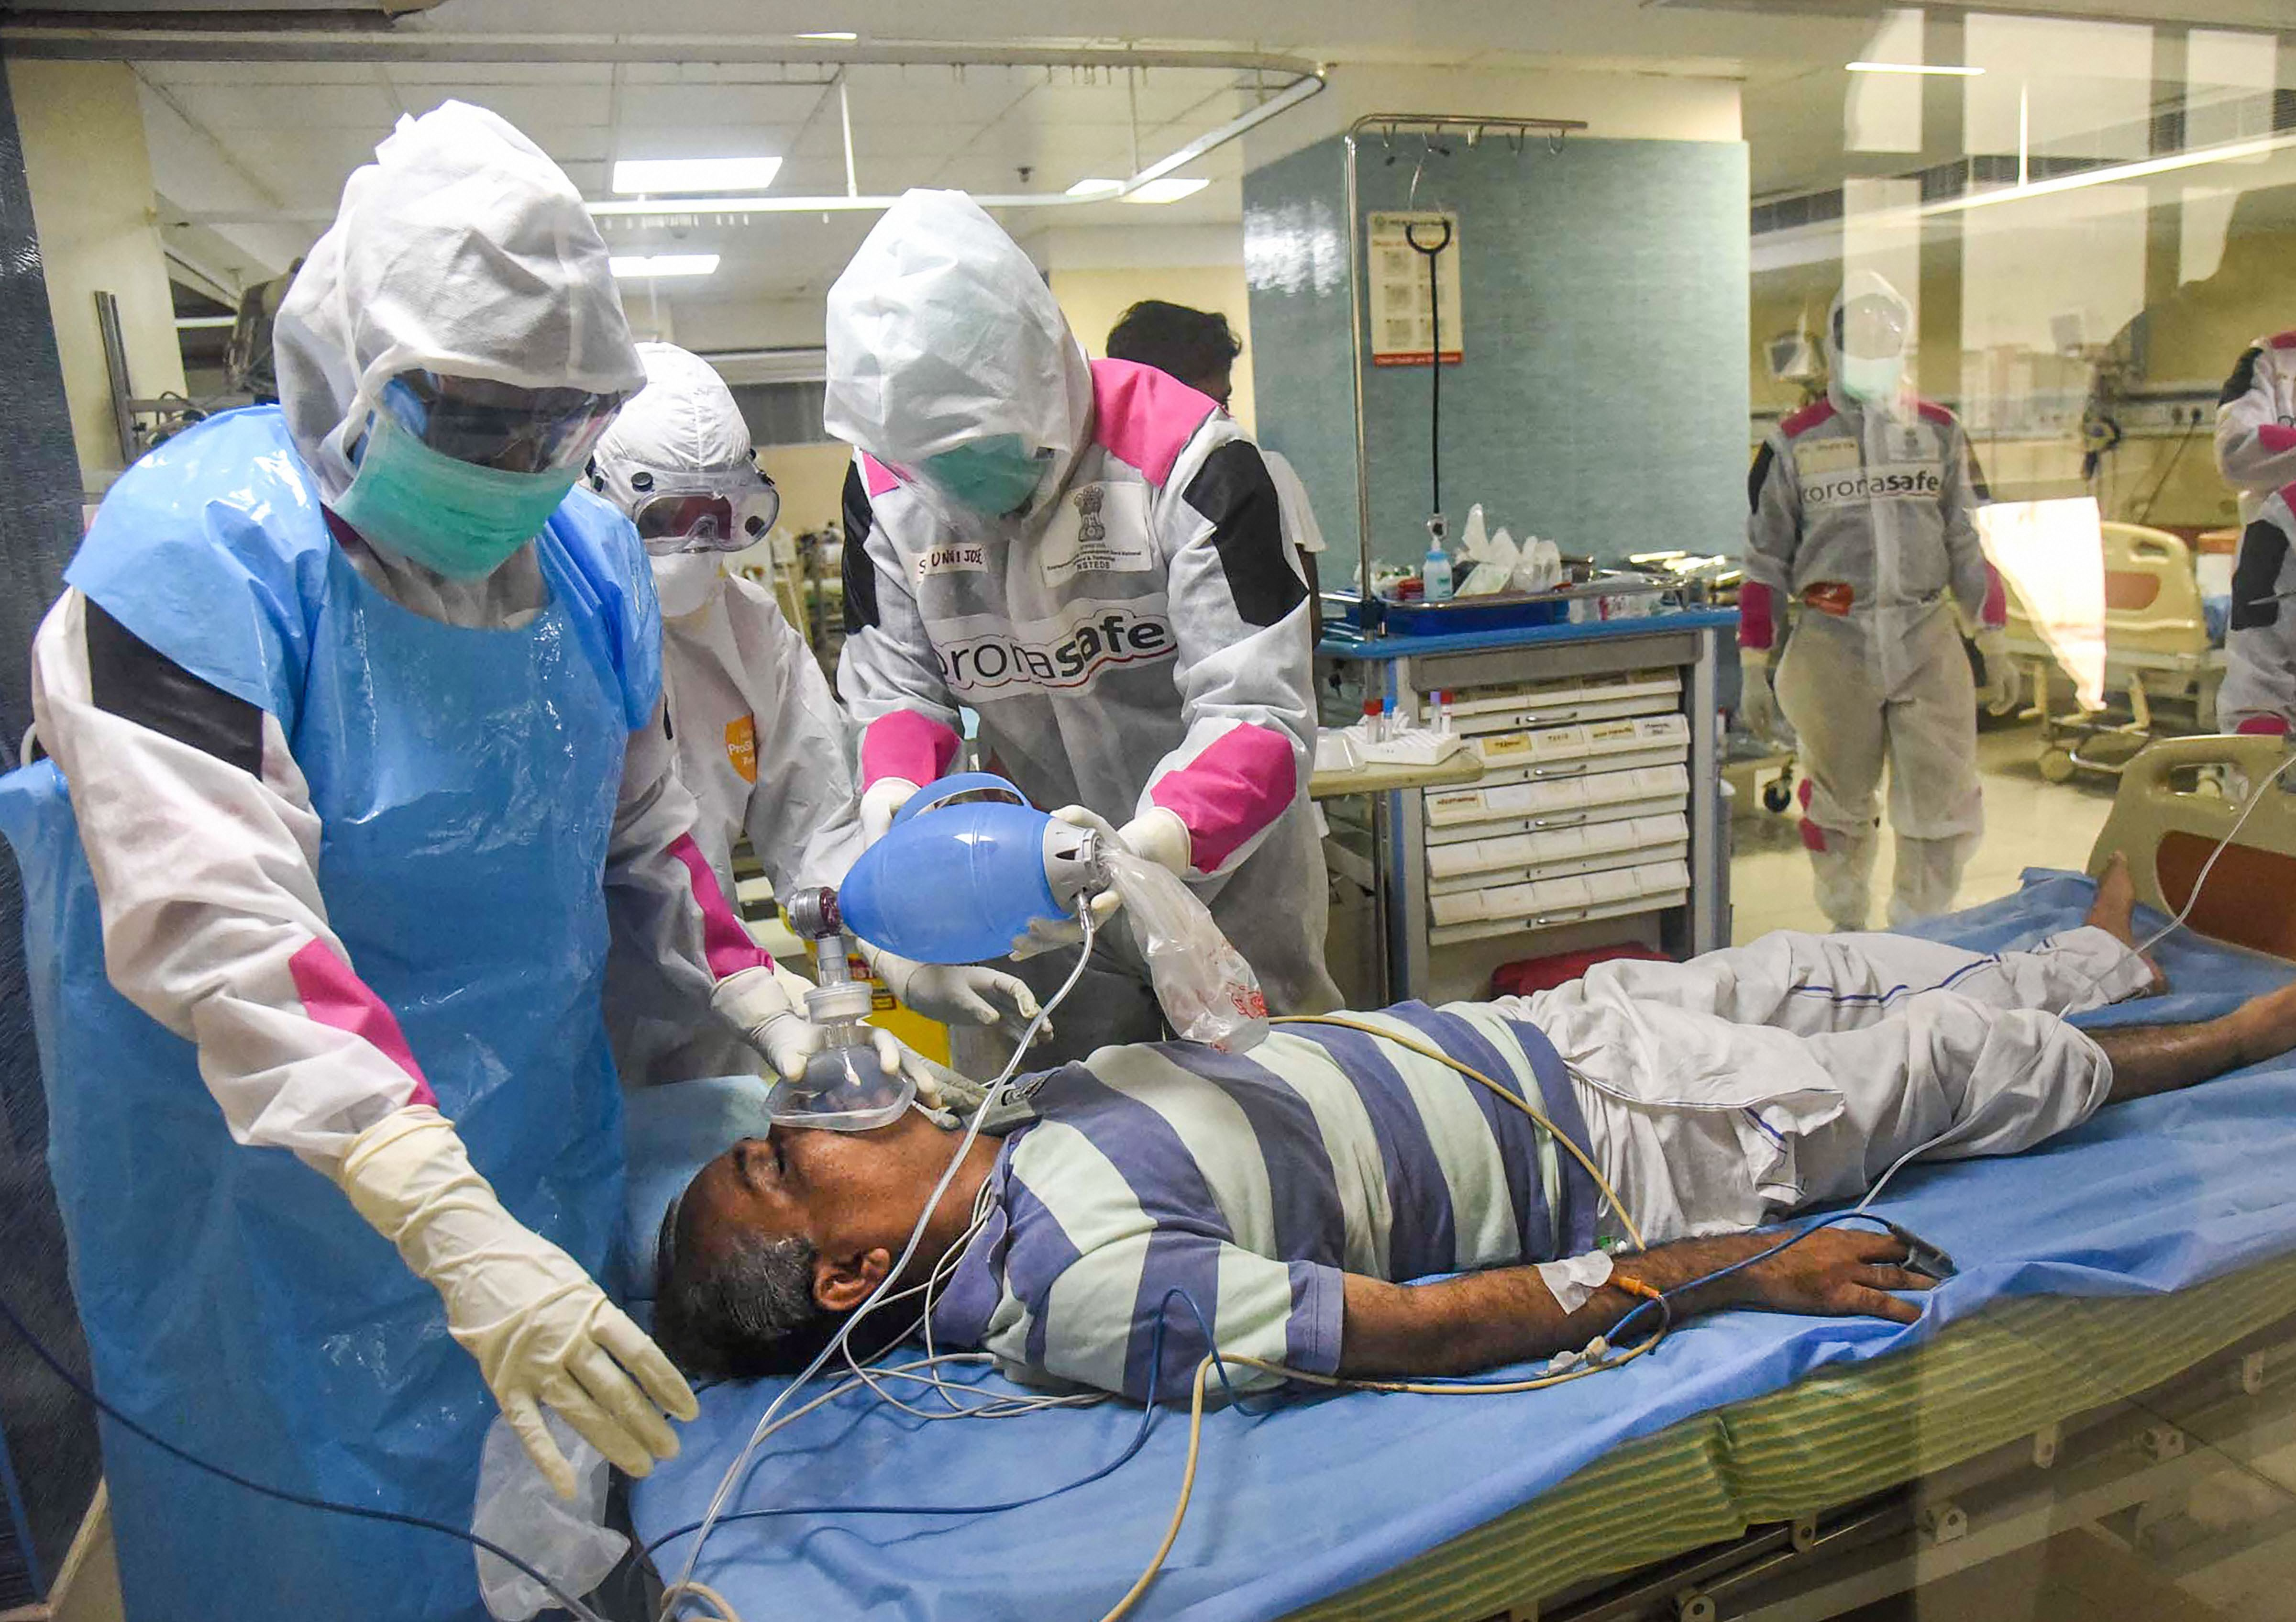 Medics undergo a mock-drill to treat Covid-19 patients, during the nationwide lockdown to curb the spread of coronavirus, in Ernakulam district, Wednesday, April 22, 2020.